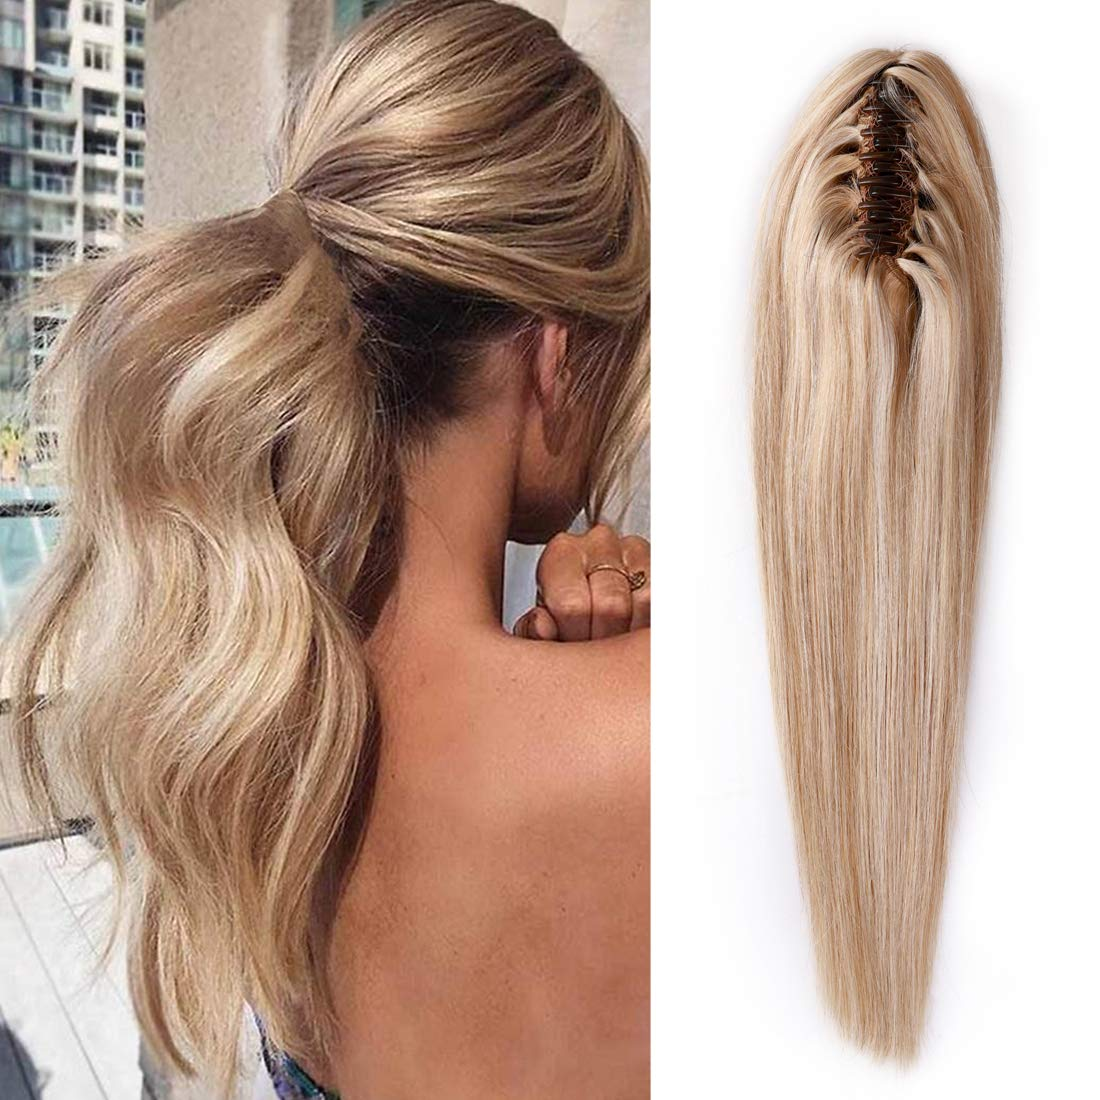 S-noilite Claw Clip Ponytail Extension Rapid rise C Human Hair Balayage Jaw Oakland Mall